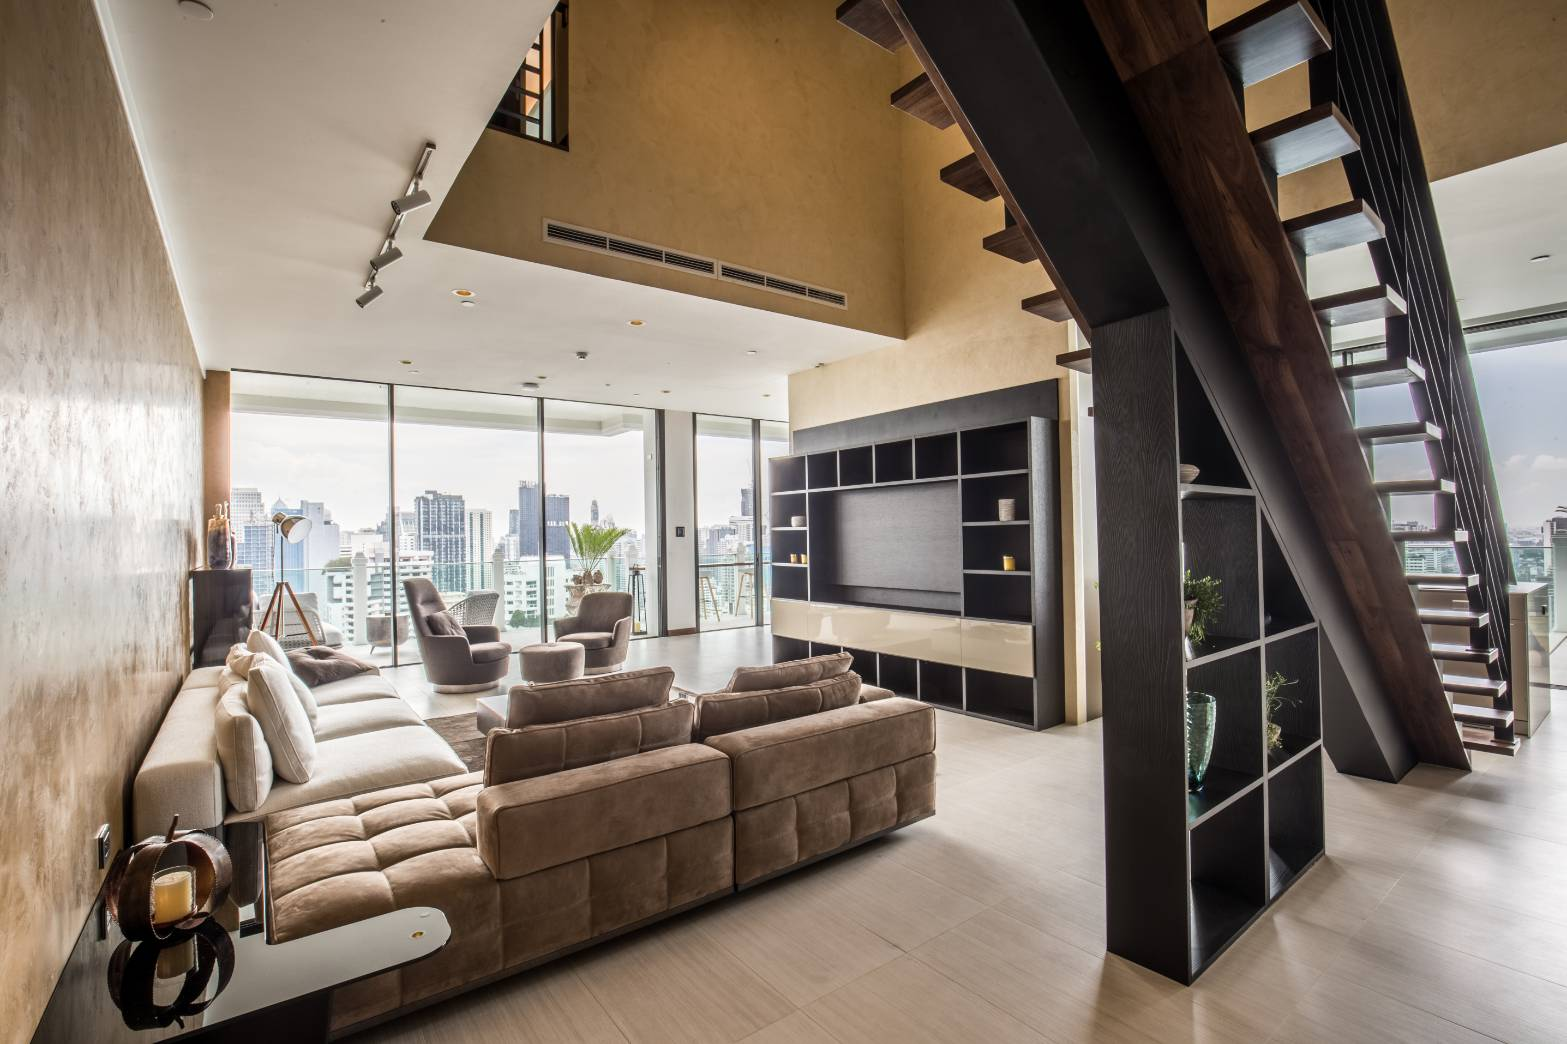 Duplex with a private pool for sale - 2-bedroom - high floor - luxury condo - Le Raffine 39